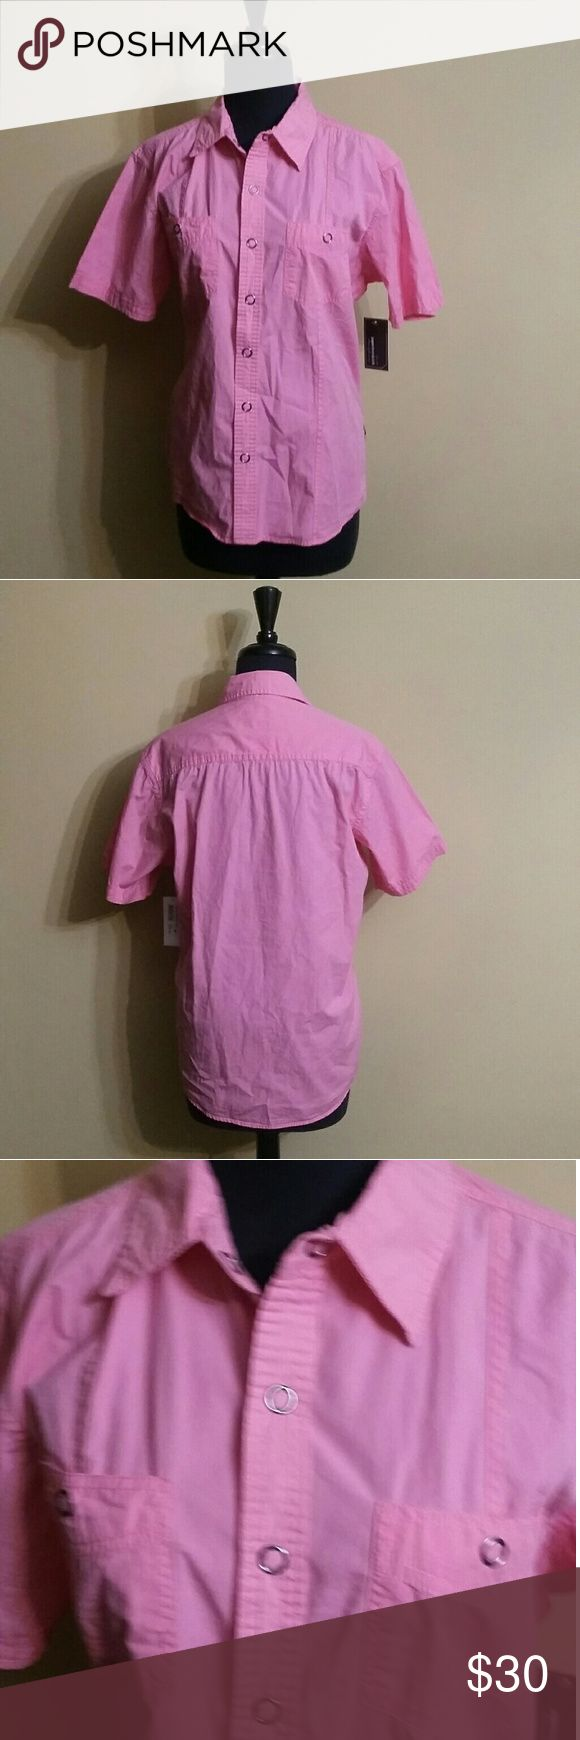 Paper Denim & Cloth Shirt This shirt is brand new with the tags. It is a Pepto-Bismol color pink. Paper Denim & Cloth Tops Blouses